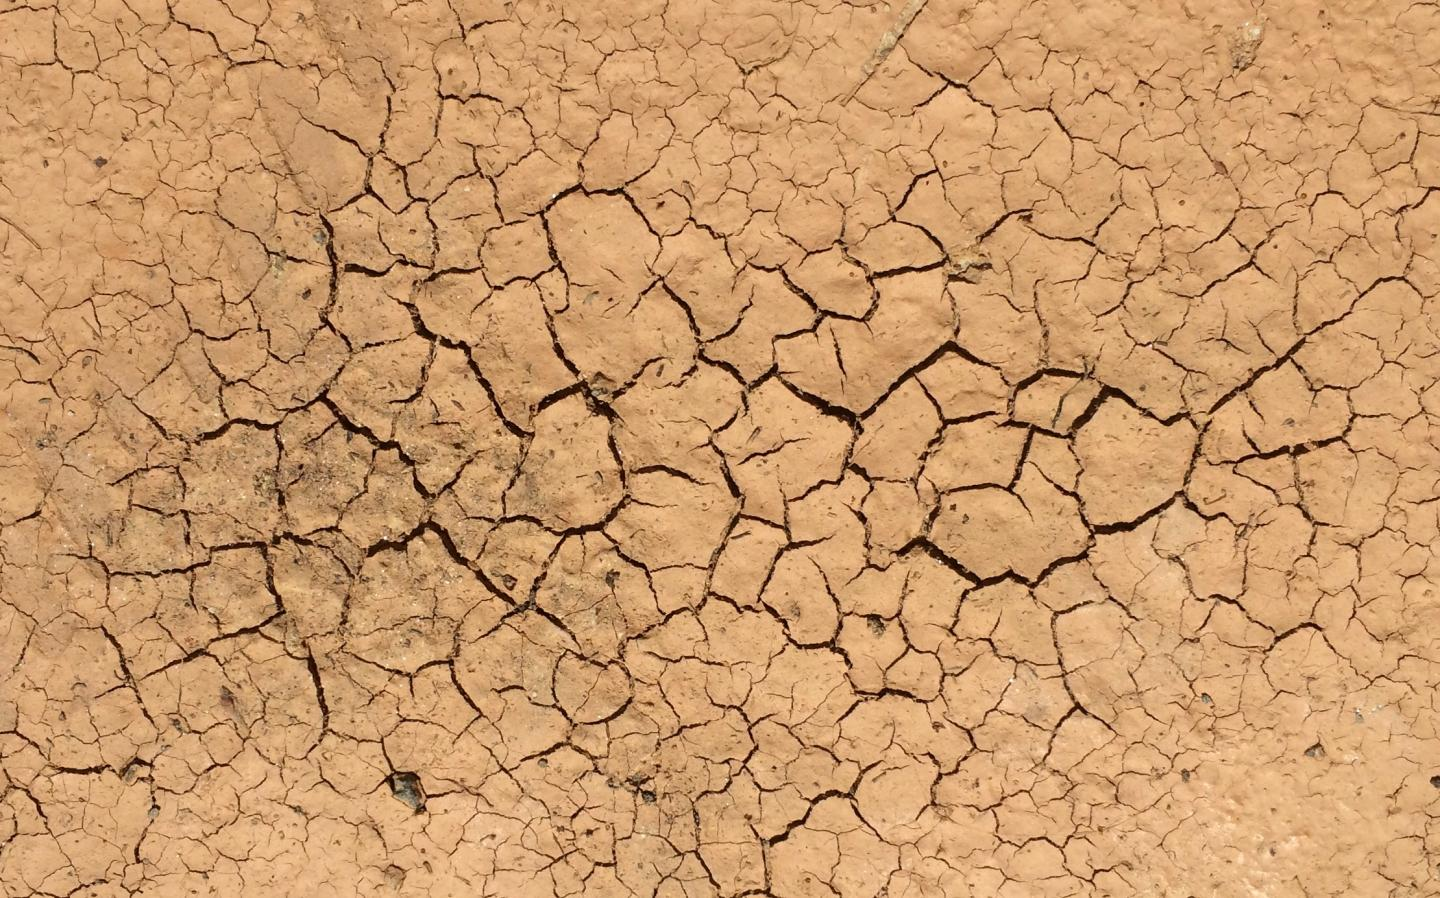 As a volume of mud dries, its internal tension grows until it suddenly cracks hierarchically, meaning with a few large cracks along with many small ones. A similar process is responsible for the wide variety of sizes that celestial bodies come in, according to a Duke professor. – Image Credit: Adrian Bejan, Duke University